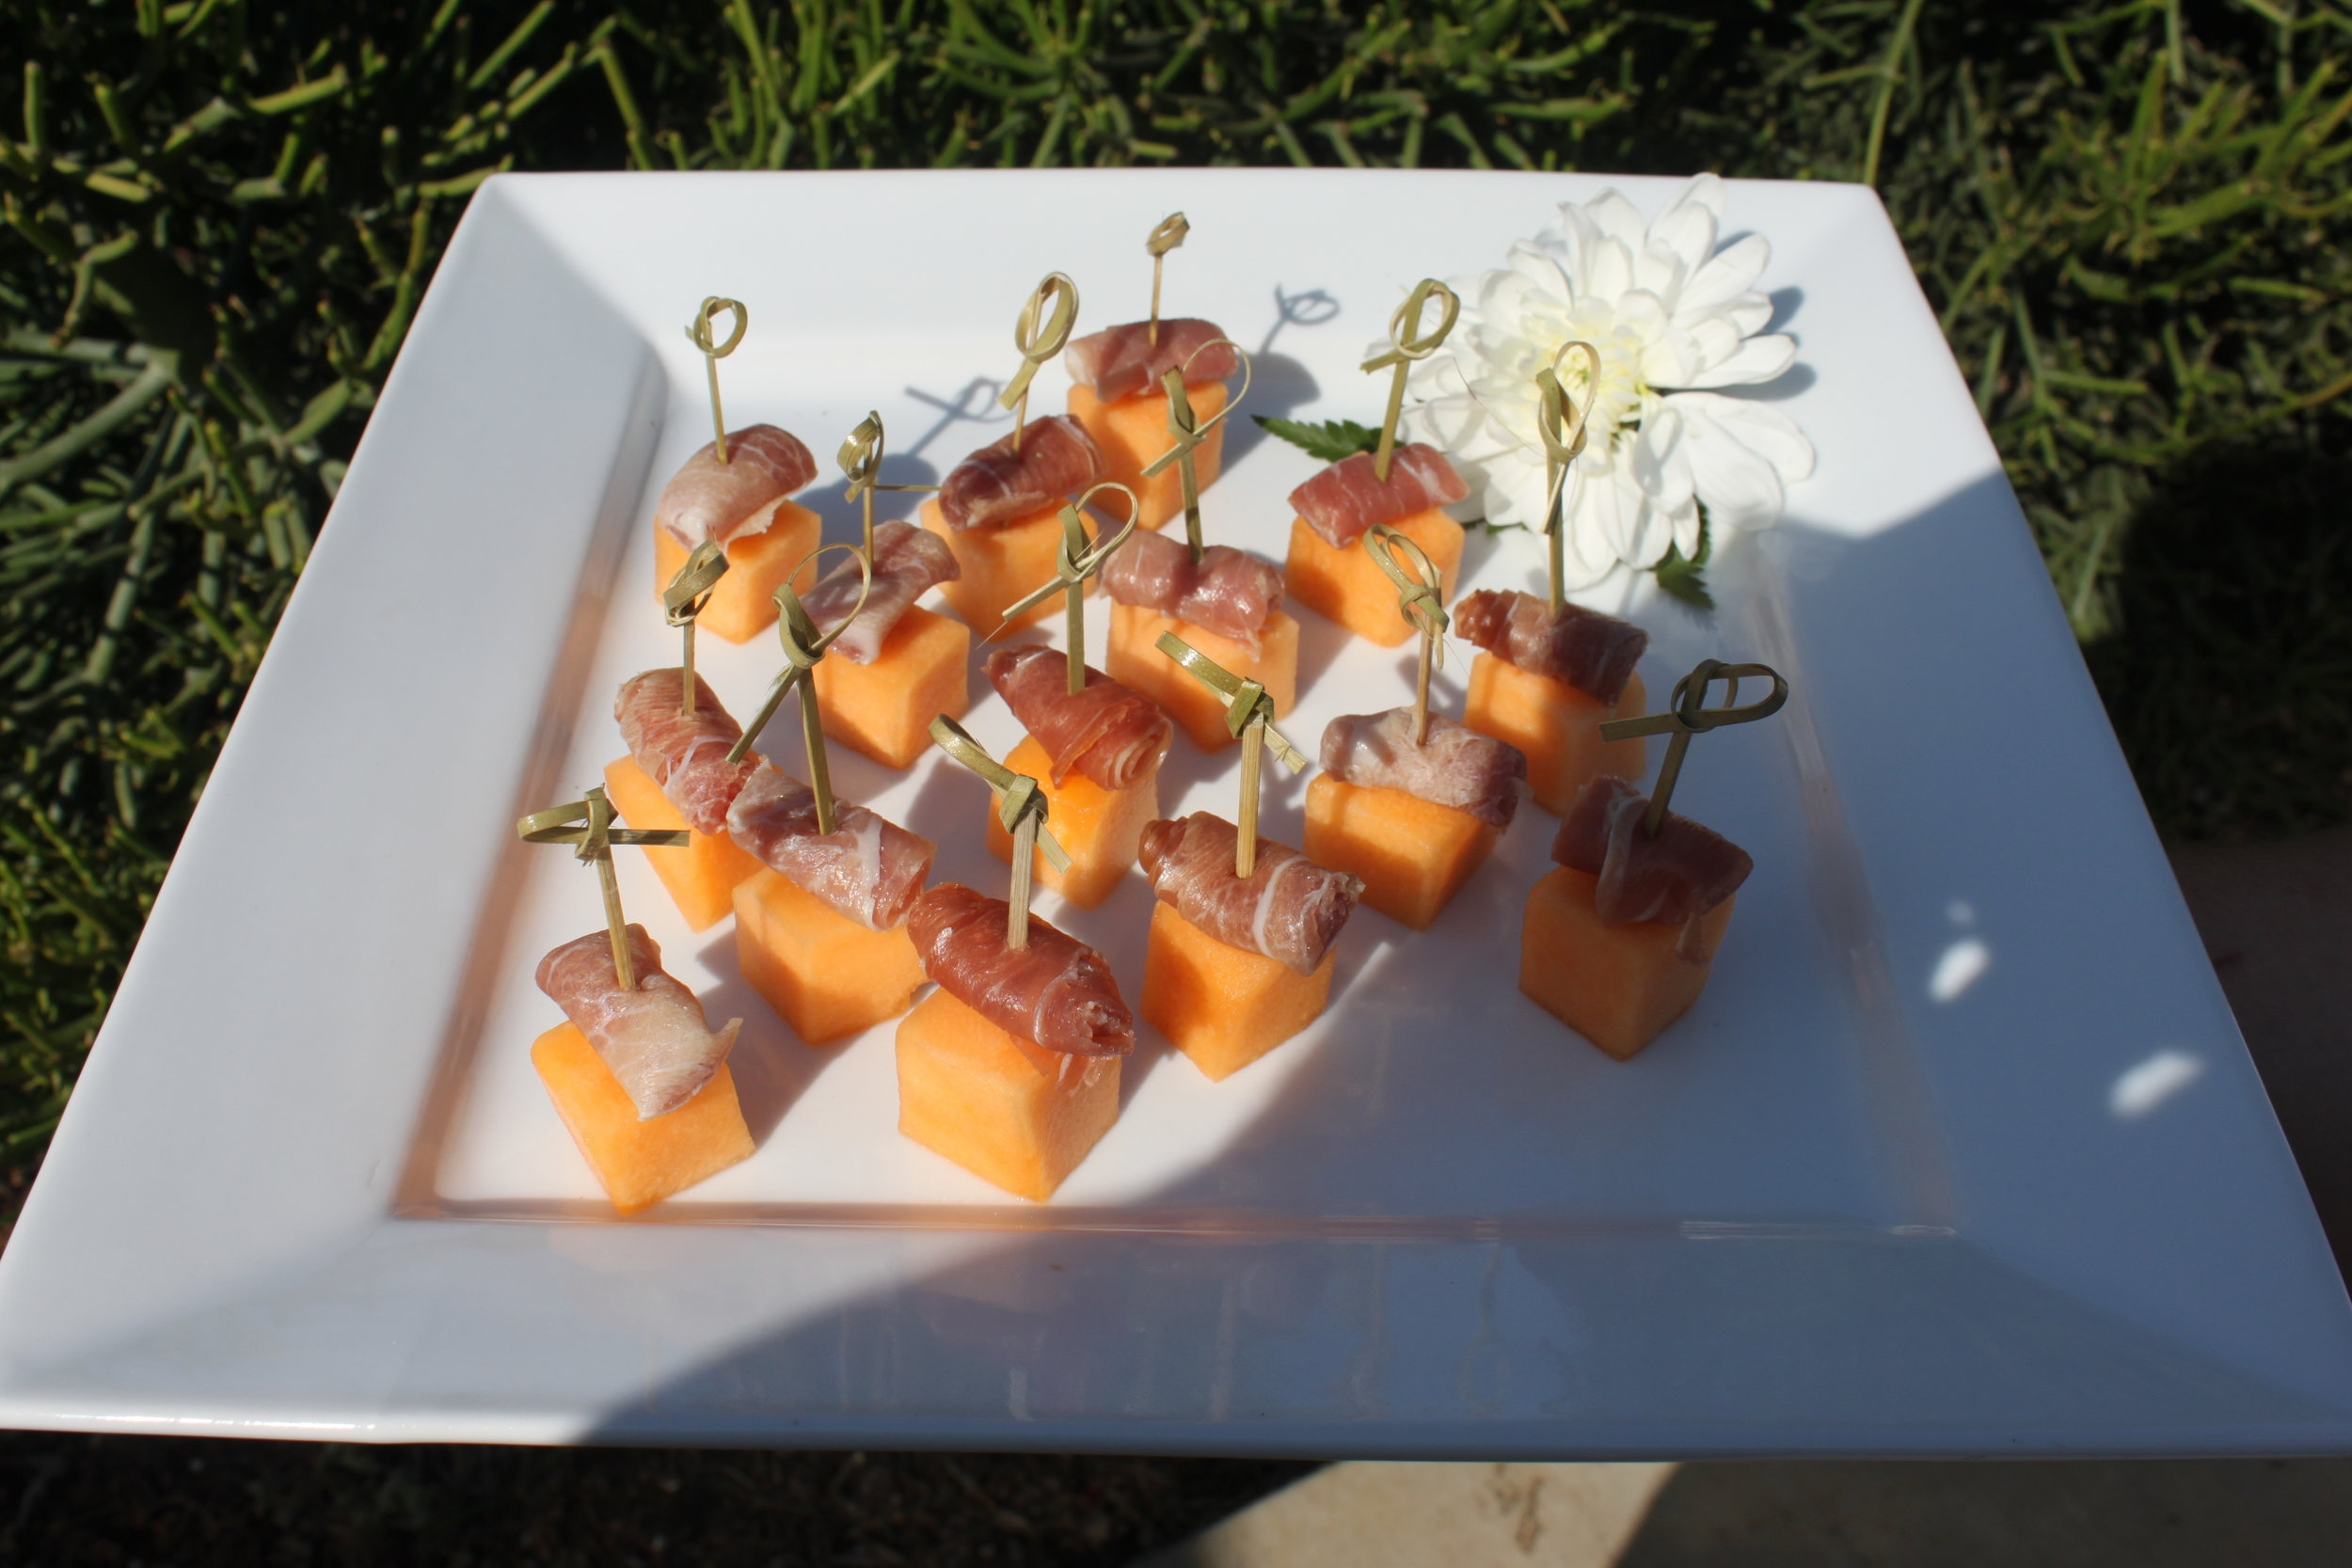 Sweet Melon with Imported Proscuitto